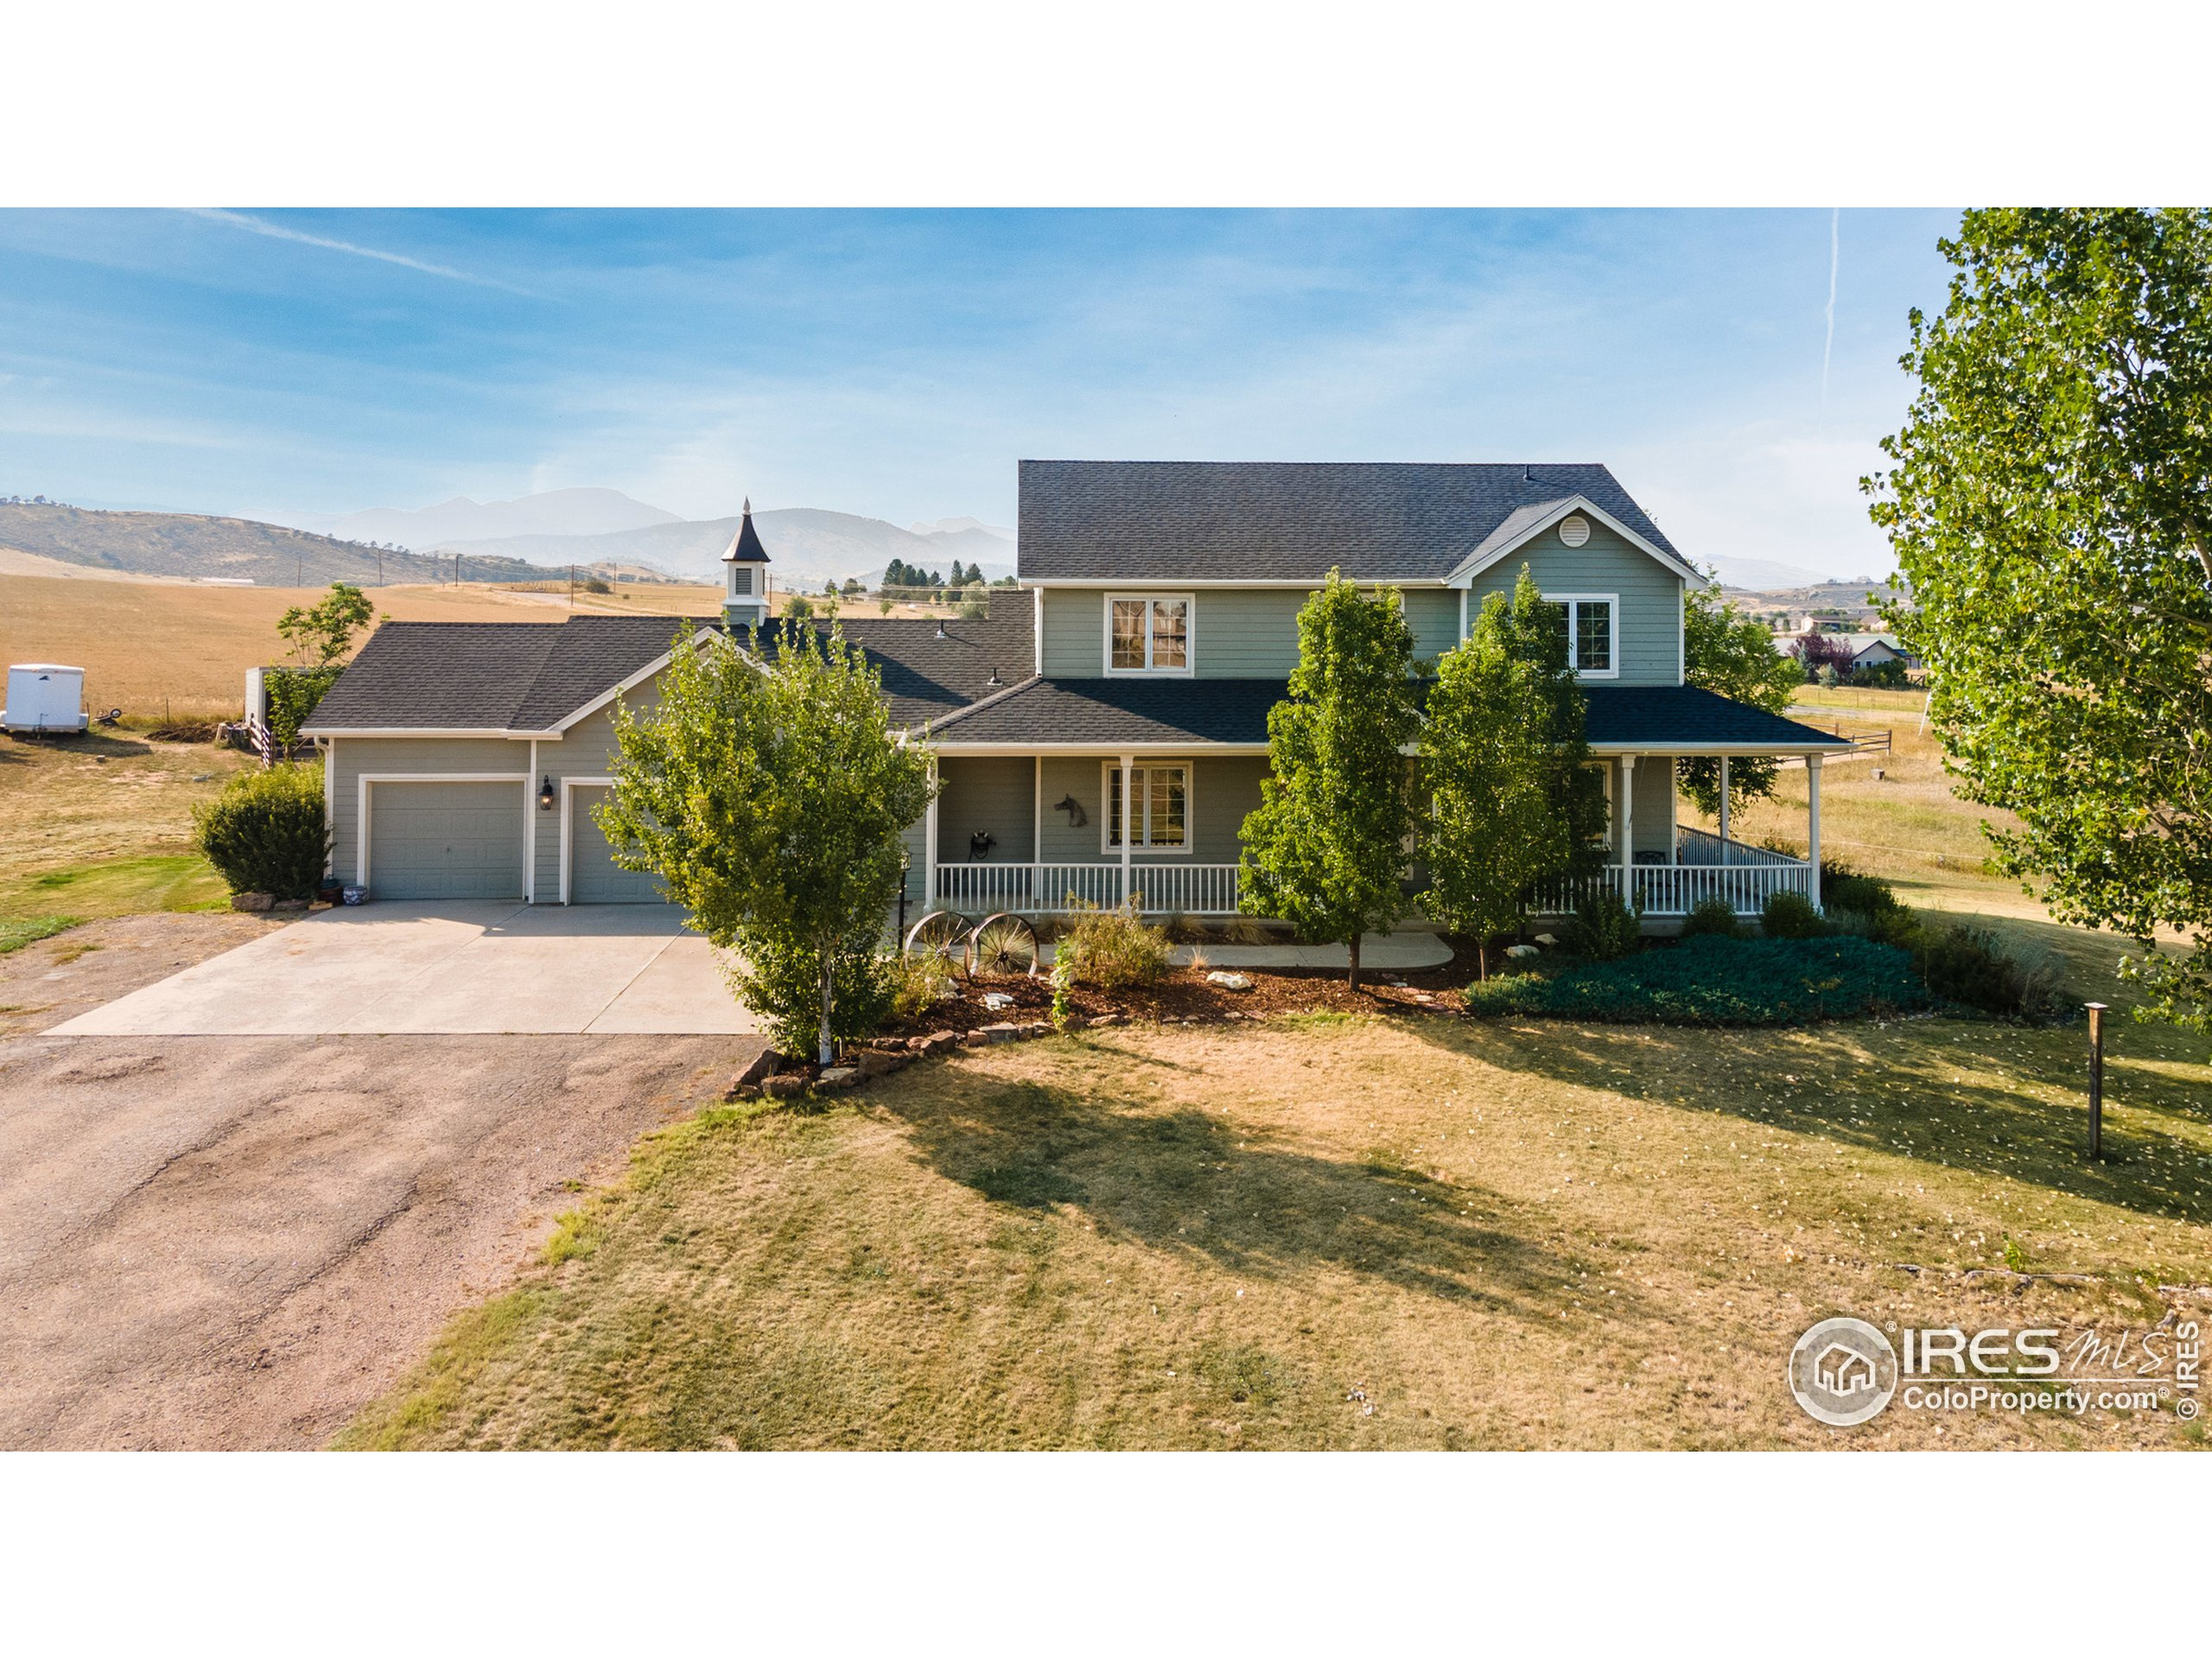 Perfect rural setting in west Loveland with panoramic views!  This gorgeous 2 story home is nearly 4,000 square feet and located at the base of the foothills on 3.36 acres of land.  Features of the home include 4 bedrooms, an office/study (or 5th bedroom) 3 bathrooms, 3 car garage, central air, family room with gas fireplace, eat in kitchen, kitchen island, ample kitchen cabinets and pantry, formal living and dining room, west facing deck, sprinkler system, wrap around porch and full unfinished basement.  Bring your animals as we have housing for them too.  By the way, have I mentioned the views?